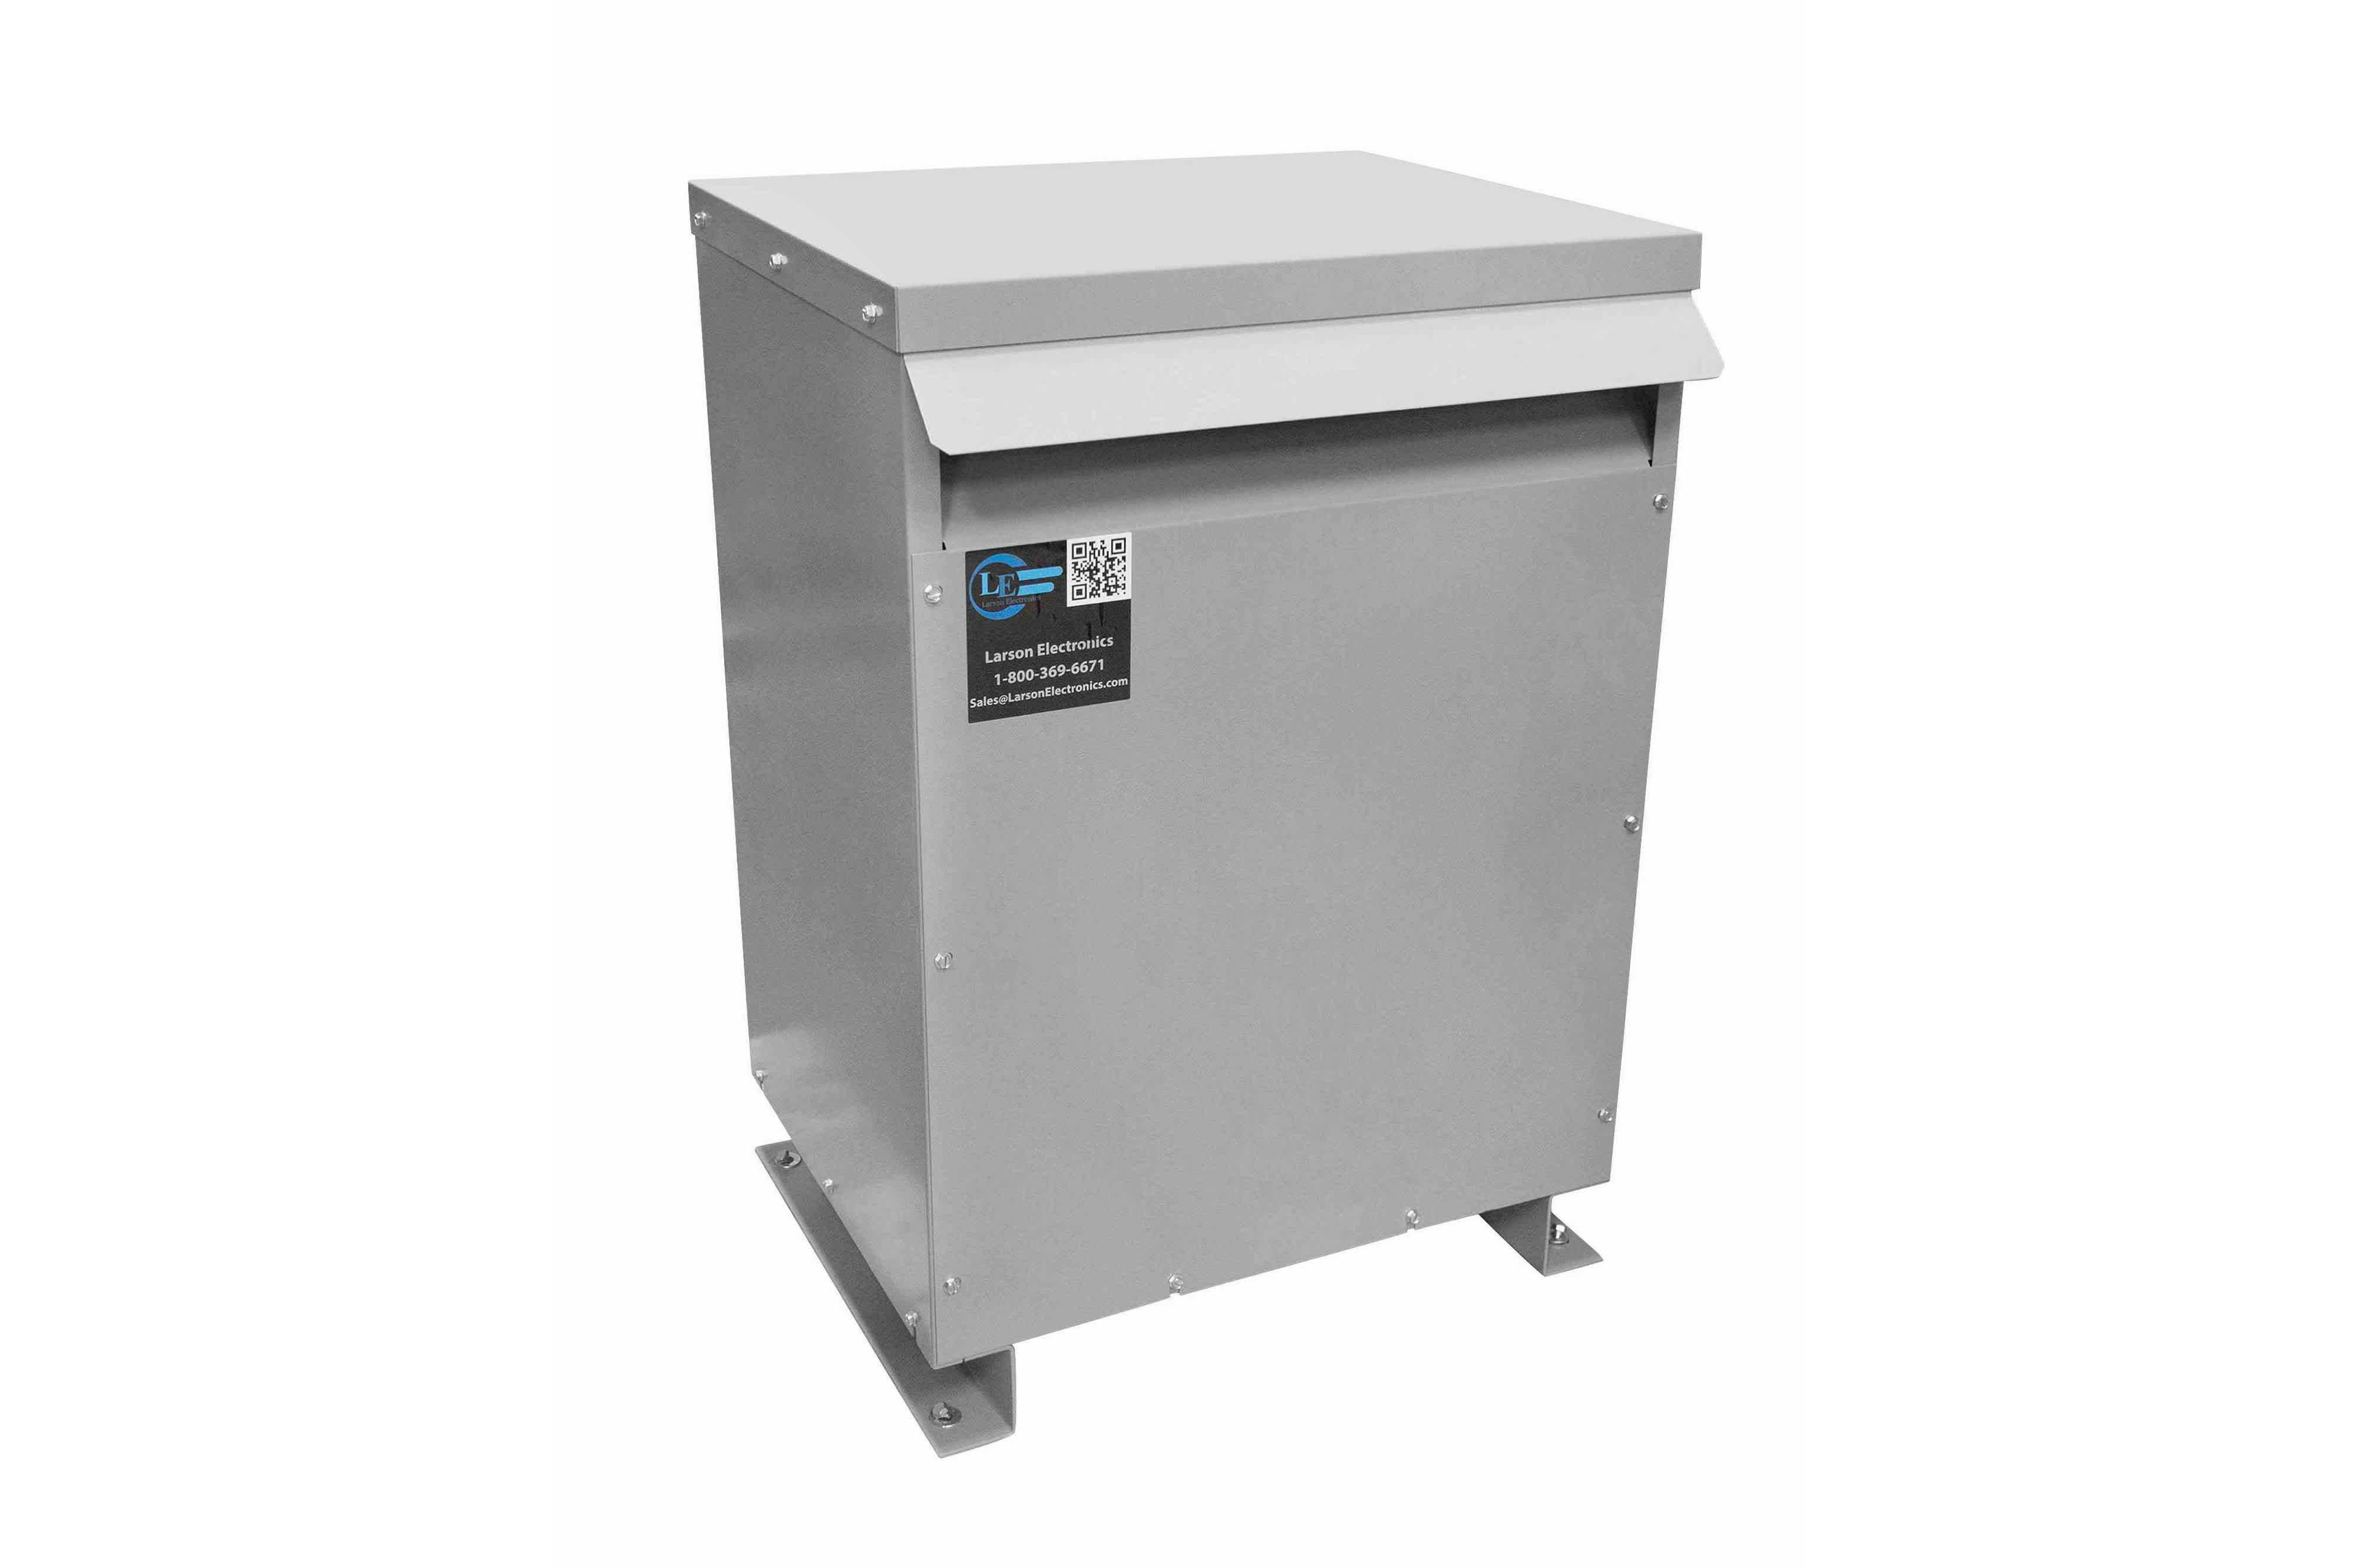 36 kVA 3PH Isolation Transformer, 600V Wye Primary, 400Y/231 Wye-N Secondary, N3R, Ventilated, 60 Hz